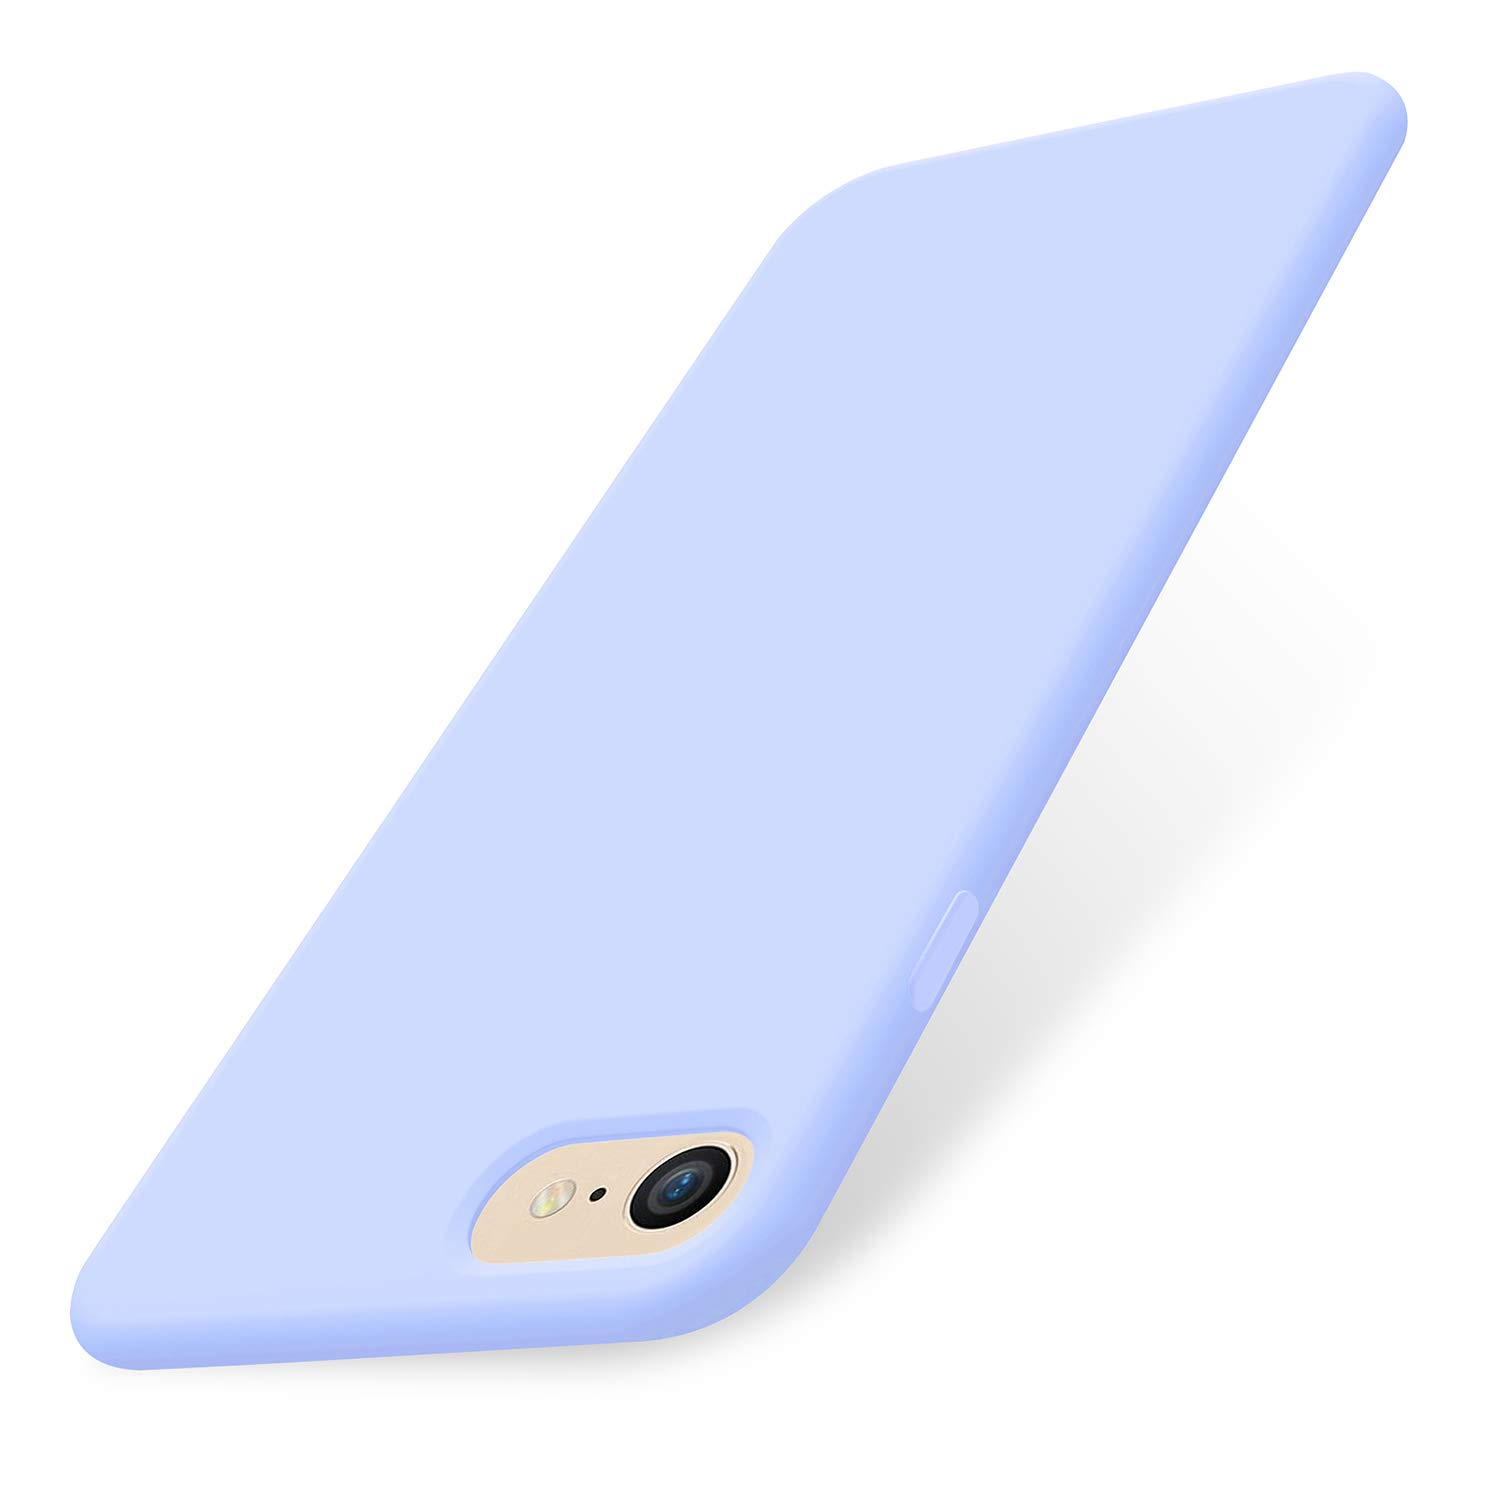 AOWIN iPhone 8 Case/iPhone 7 Case, Liquid Silicone Gel Rubber Phone Cover Soft Microfiber Cloth Lining Cushion Cases Compatible with iPhone 8 / iPhone 7 - Light Blue